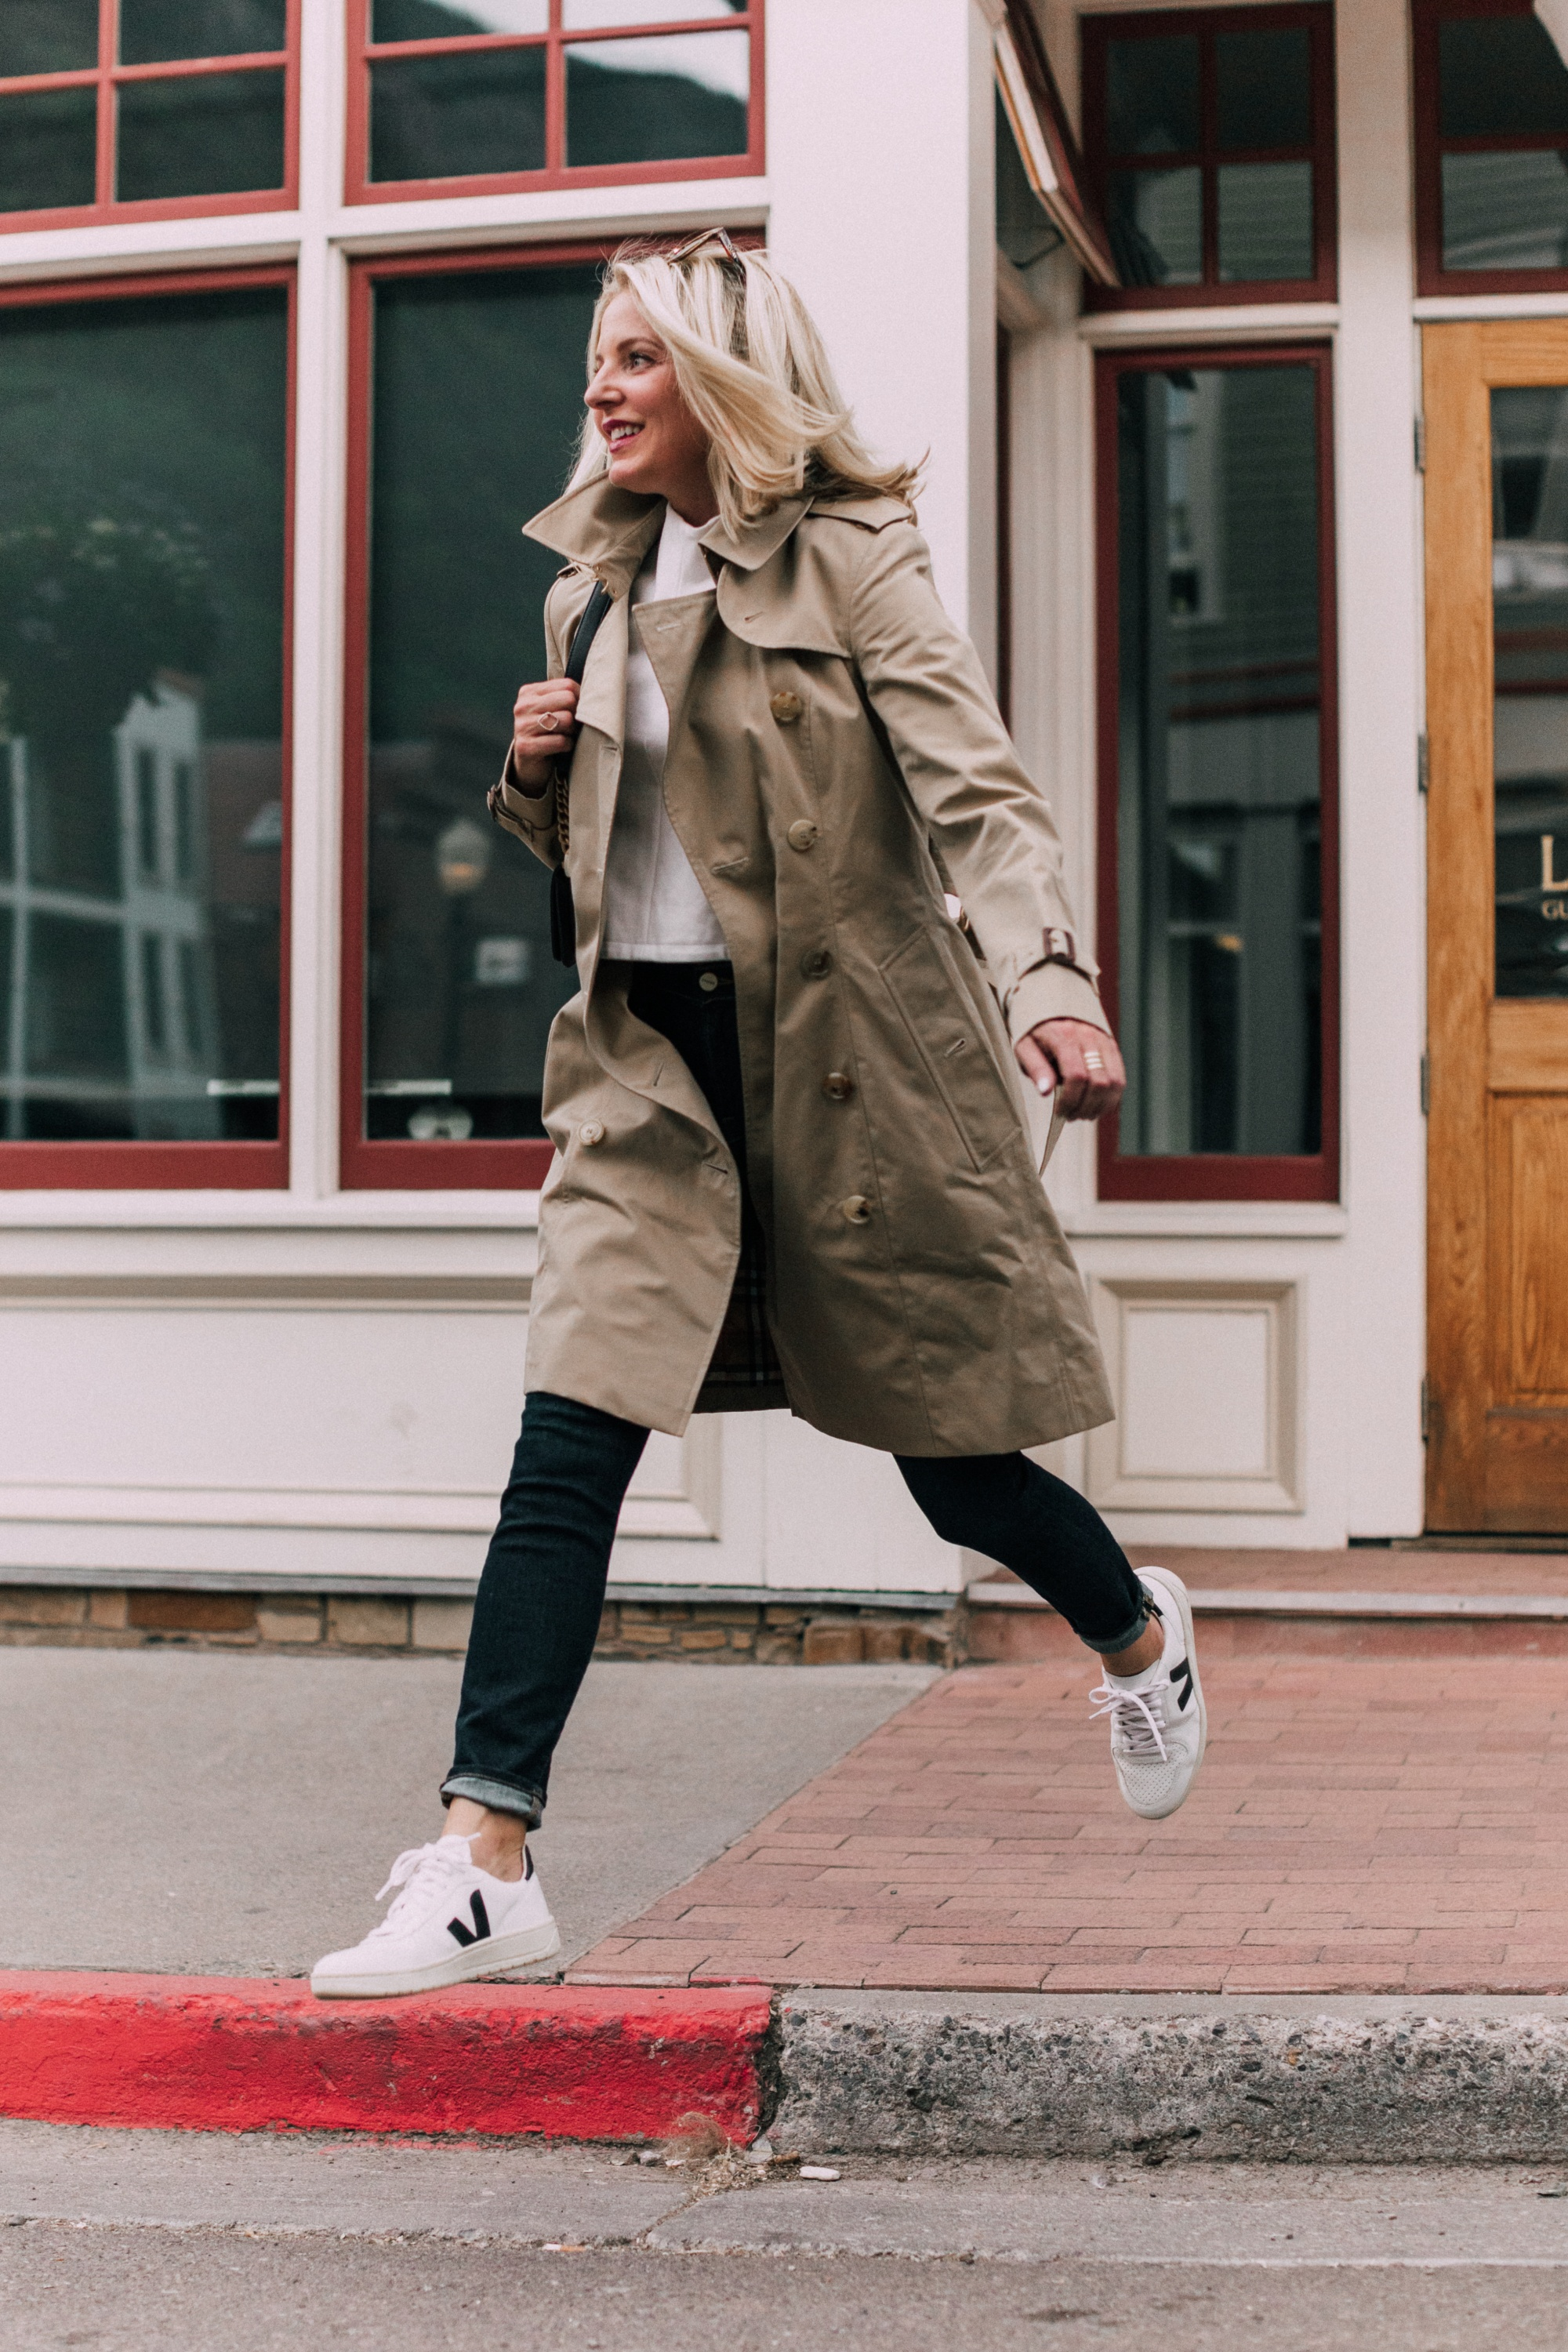 Burberry Chelsea Slim Fit Heritage trench coat with blue jeans veja v-10 white sneakers outfit